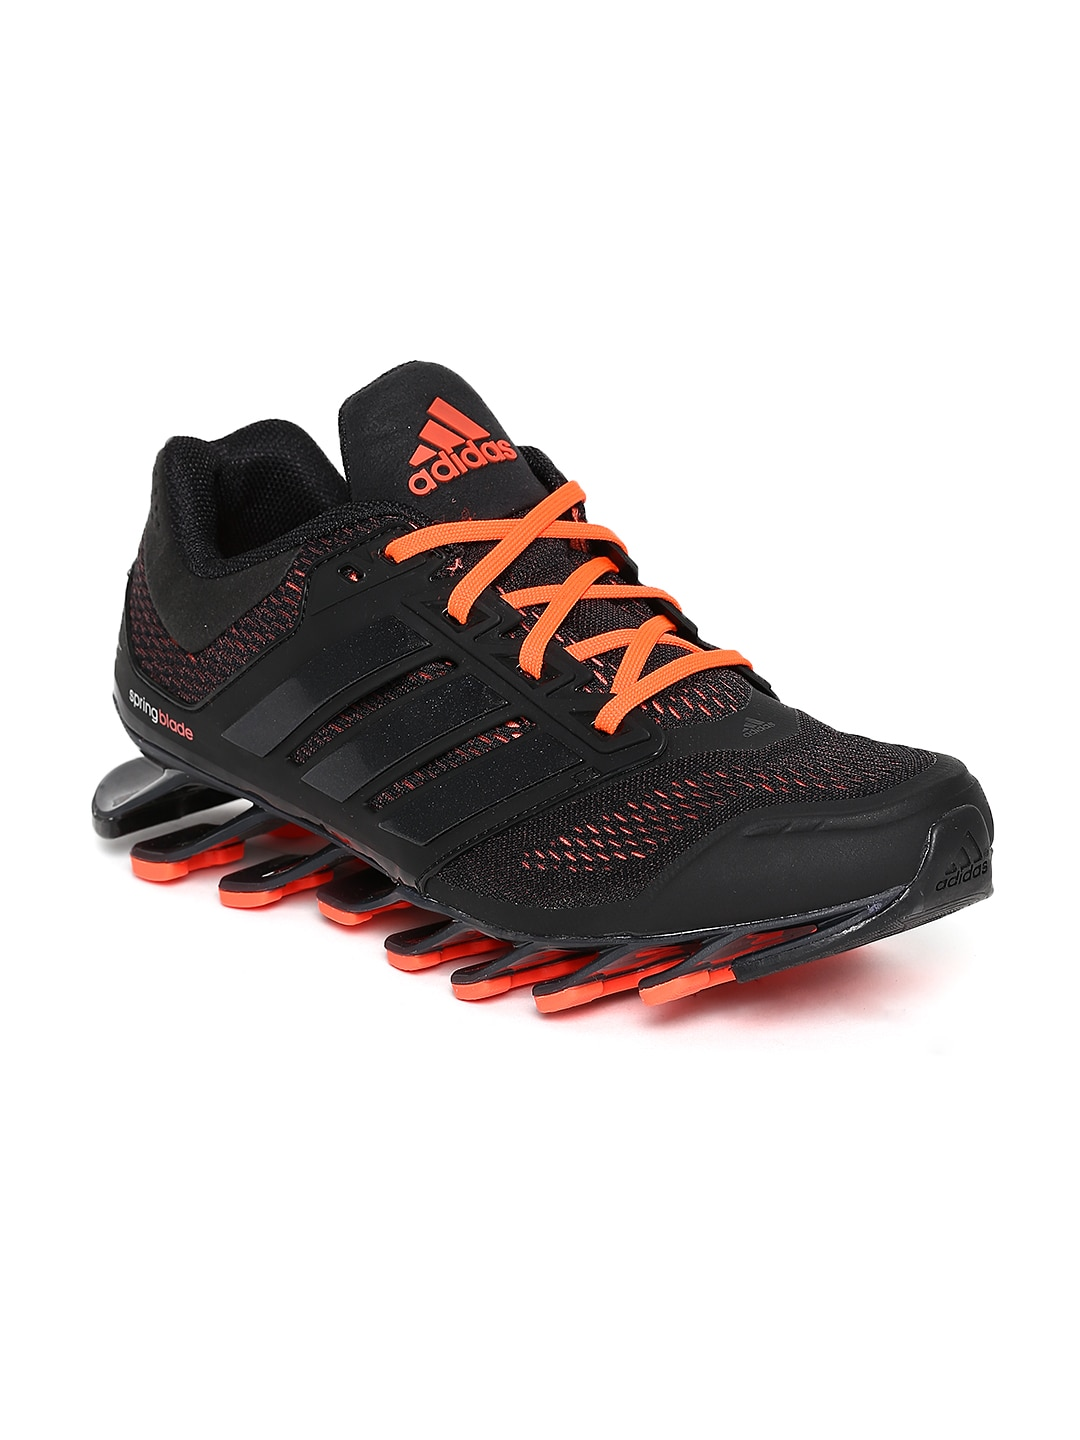 Adidas Adidas Men Black Springblade Drive M Running Shoes (Multicolor)